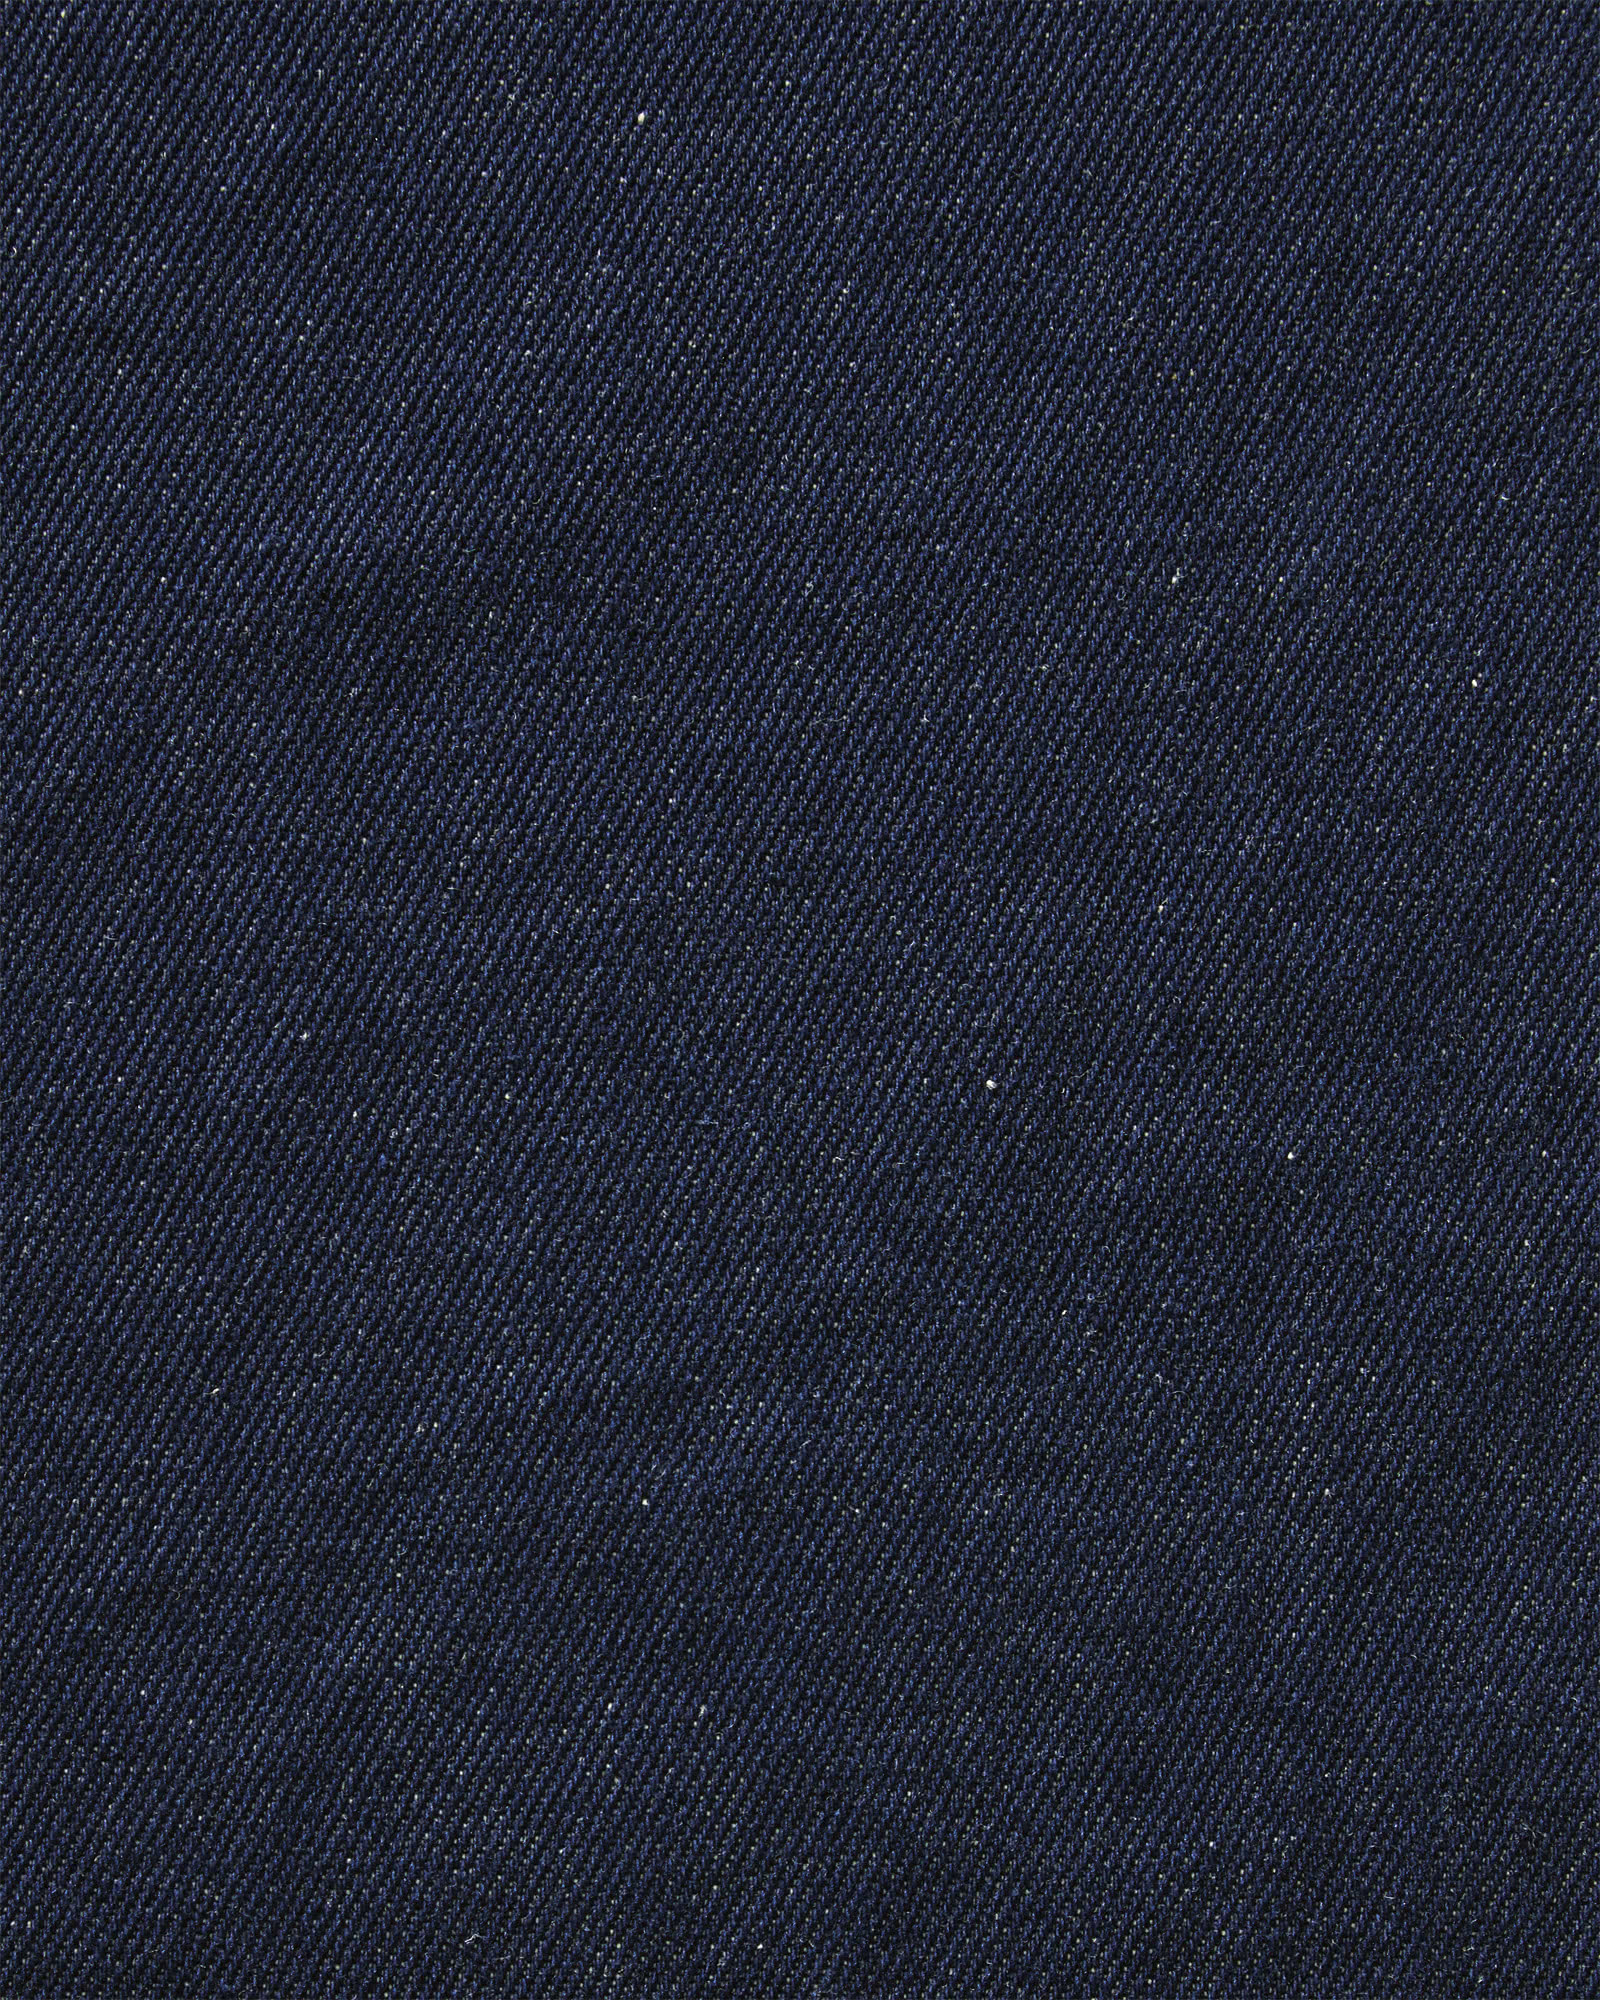 Fabric by the Yard – Cotton Denim, Midnight